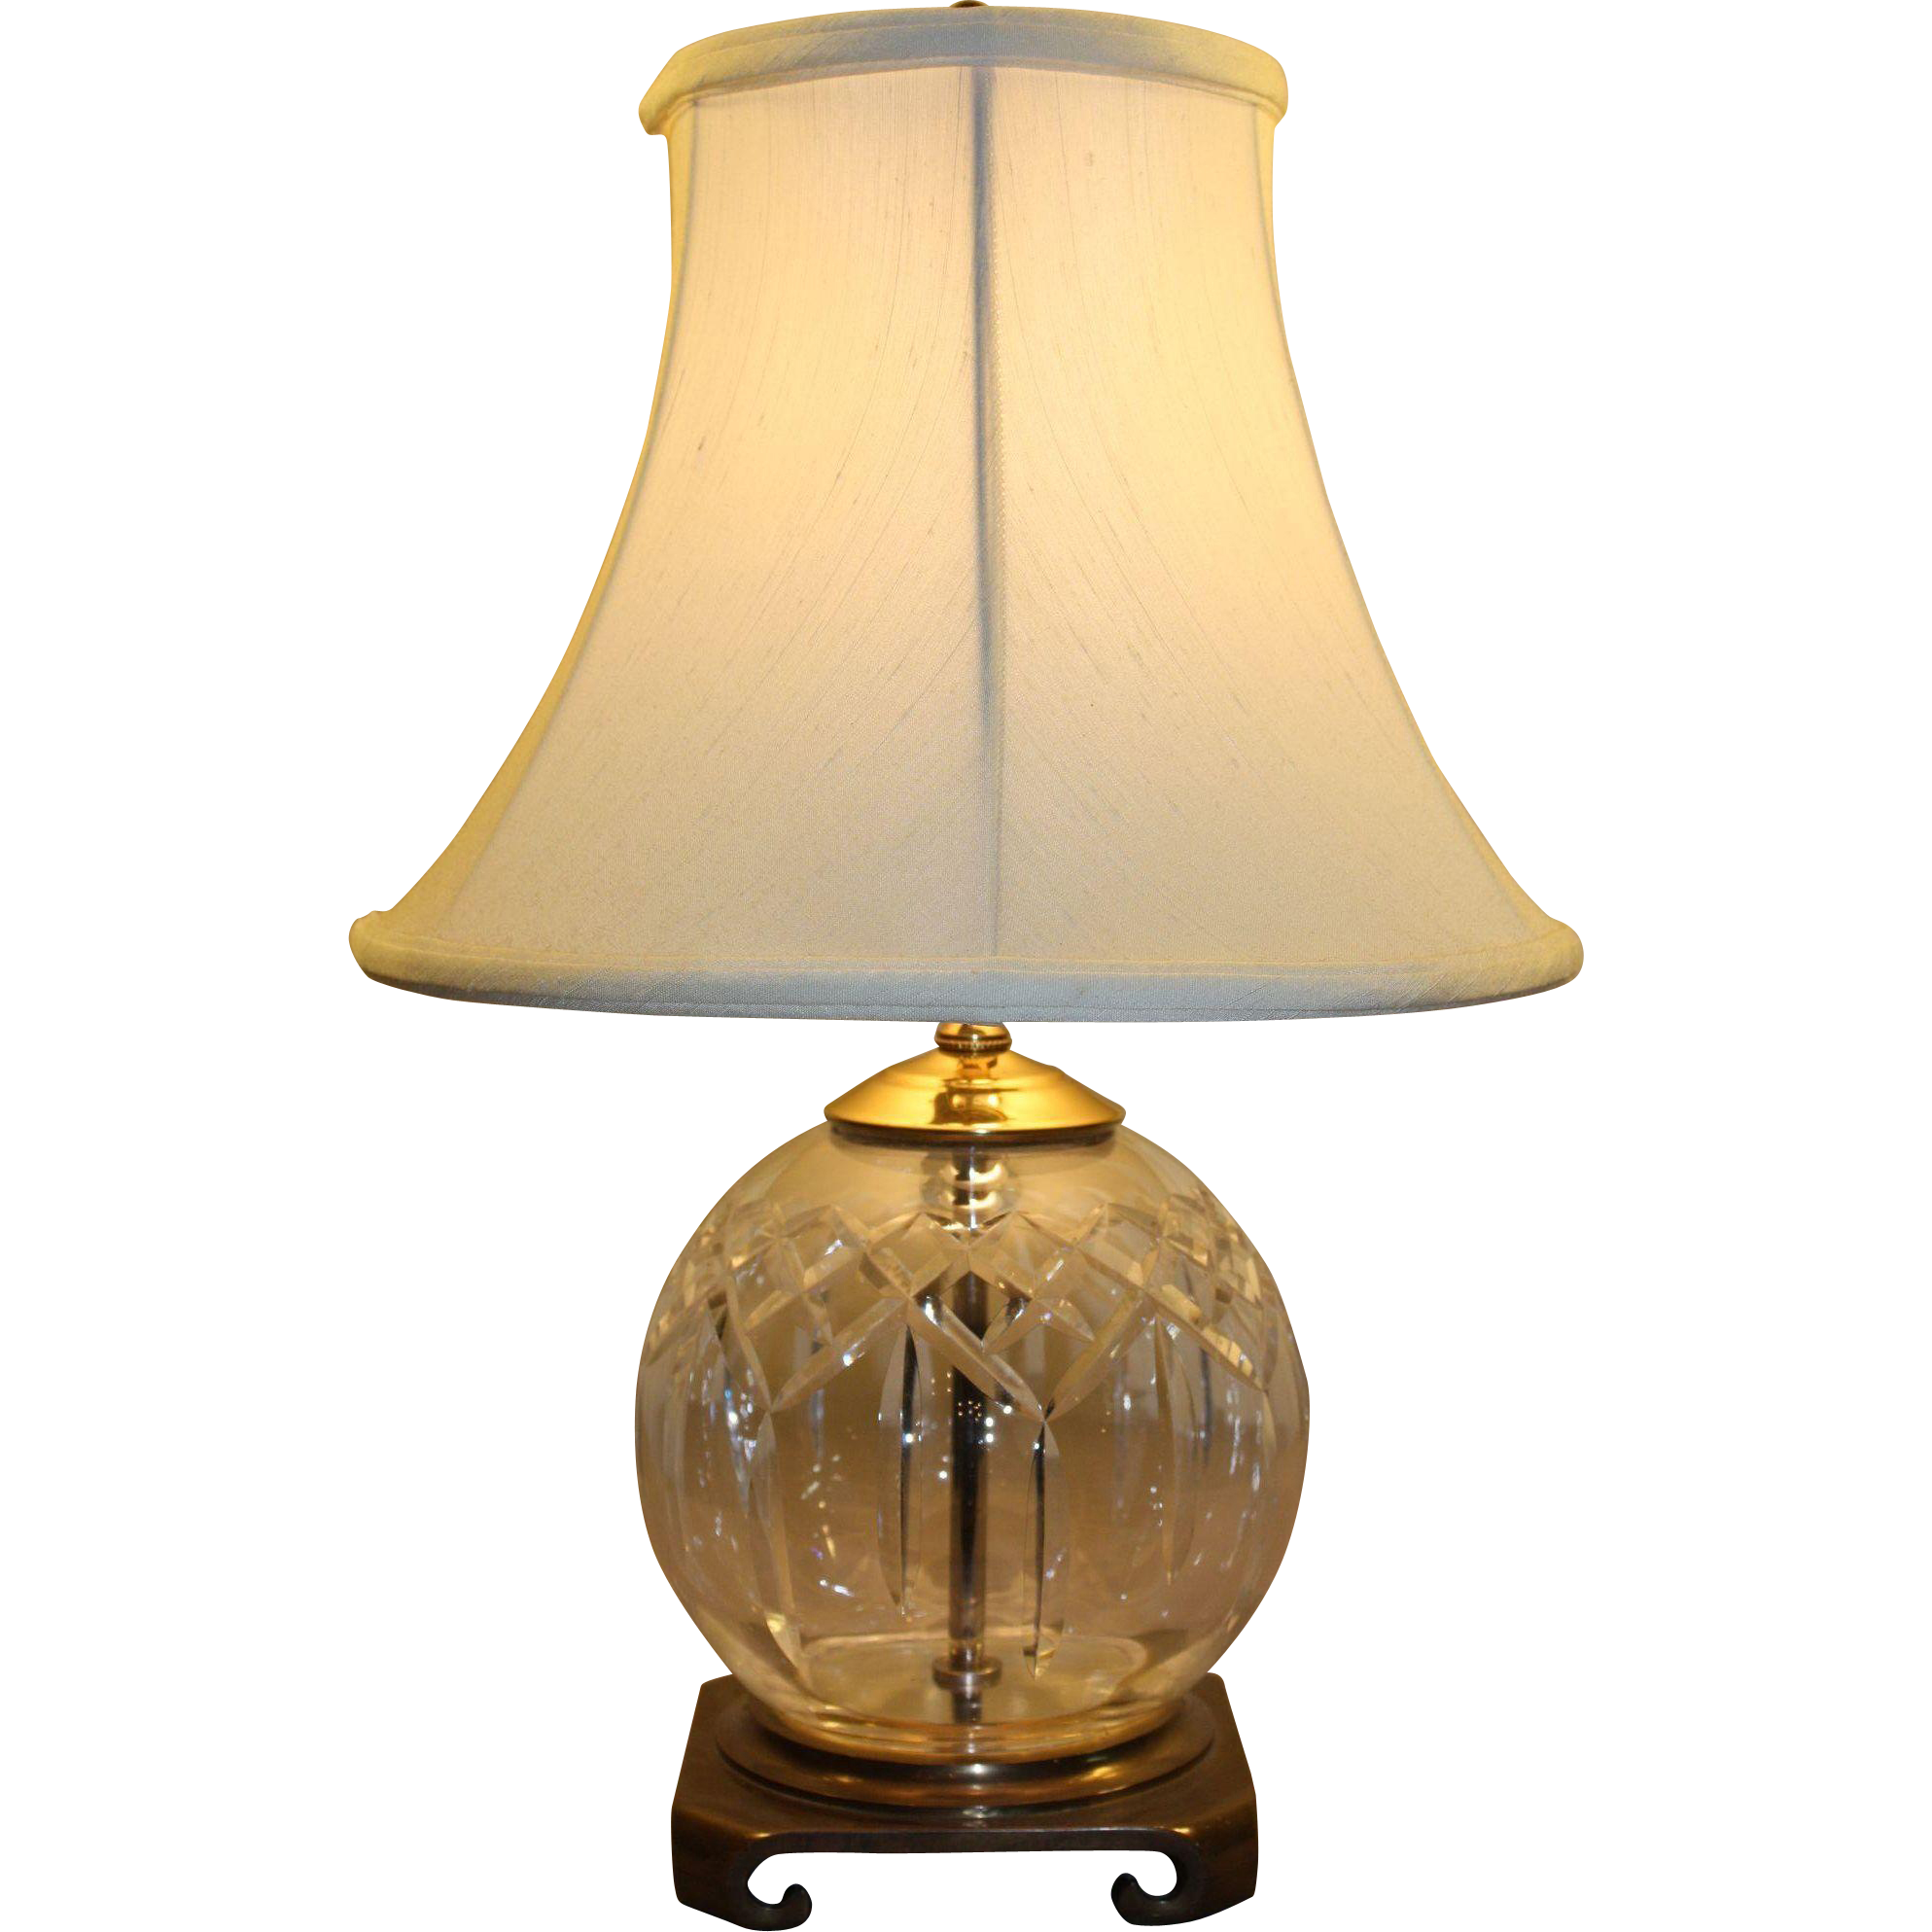 Waterford Crystal Lismore Table Lamp Sold On Ruby Lane